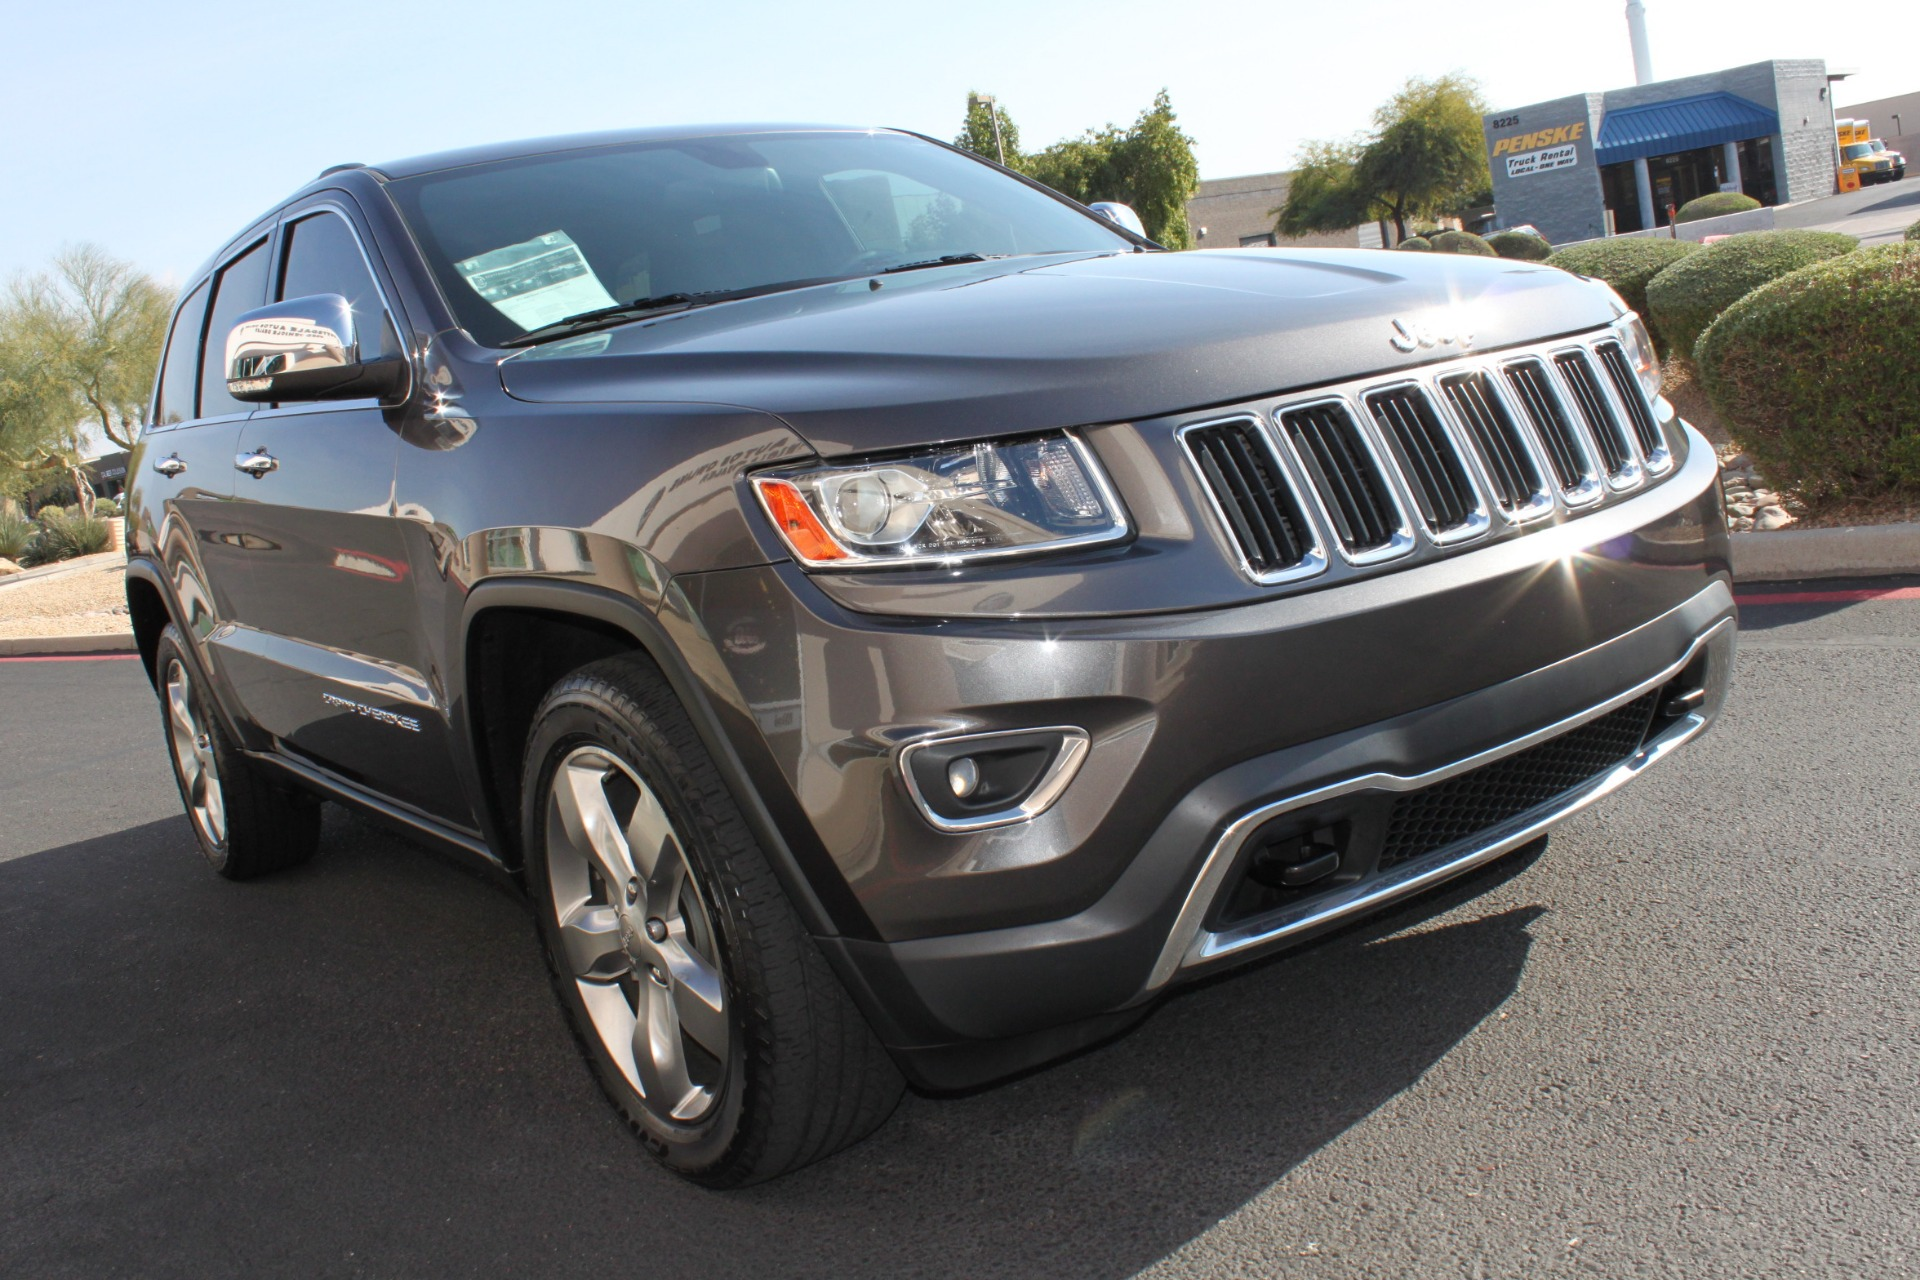 Used-2014-Jeep-Grand-Cherokee-Limited-4X4-Wrangler